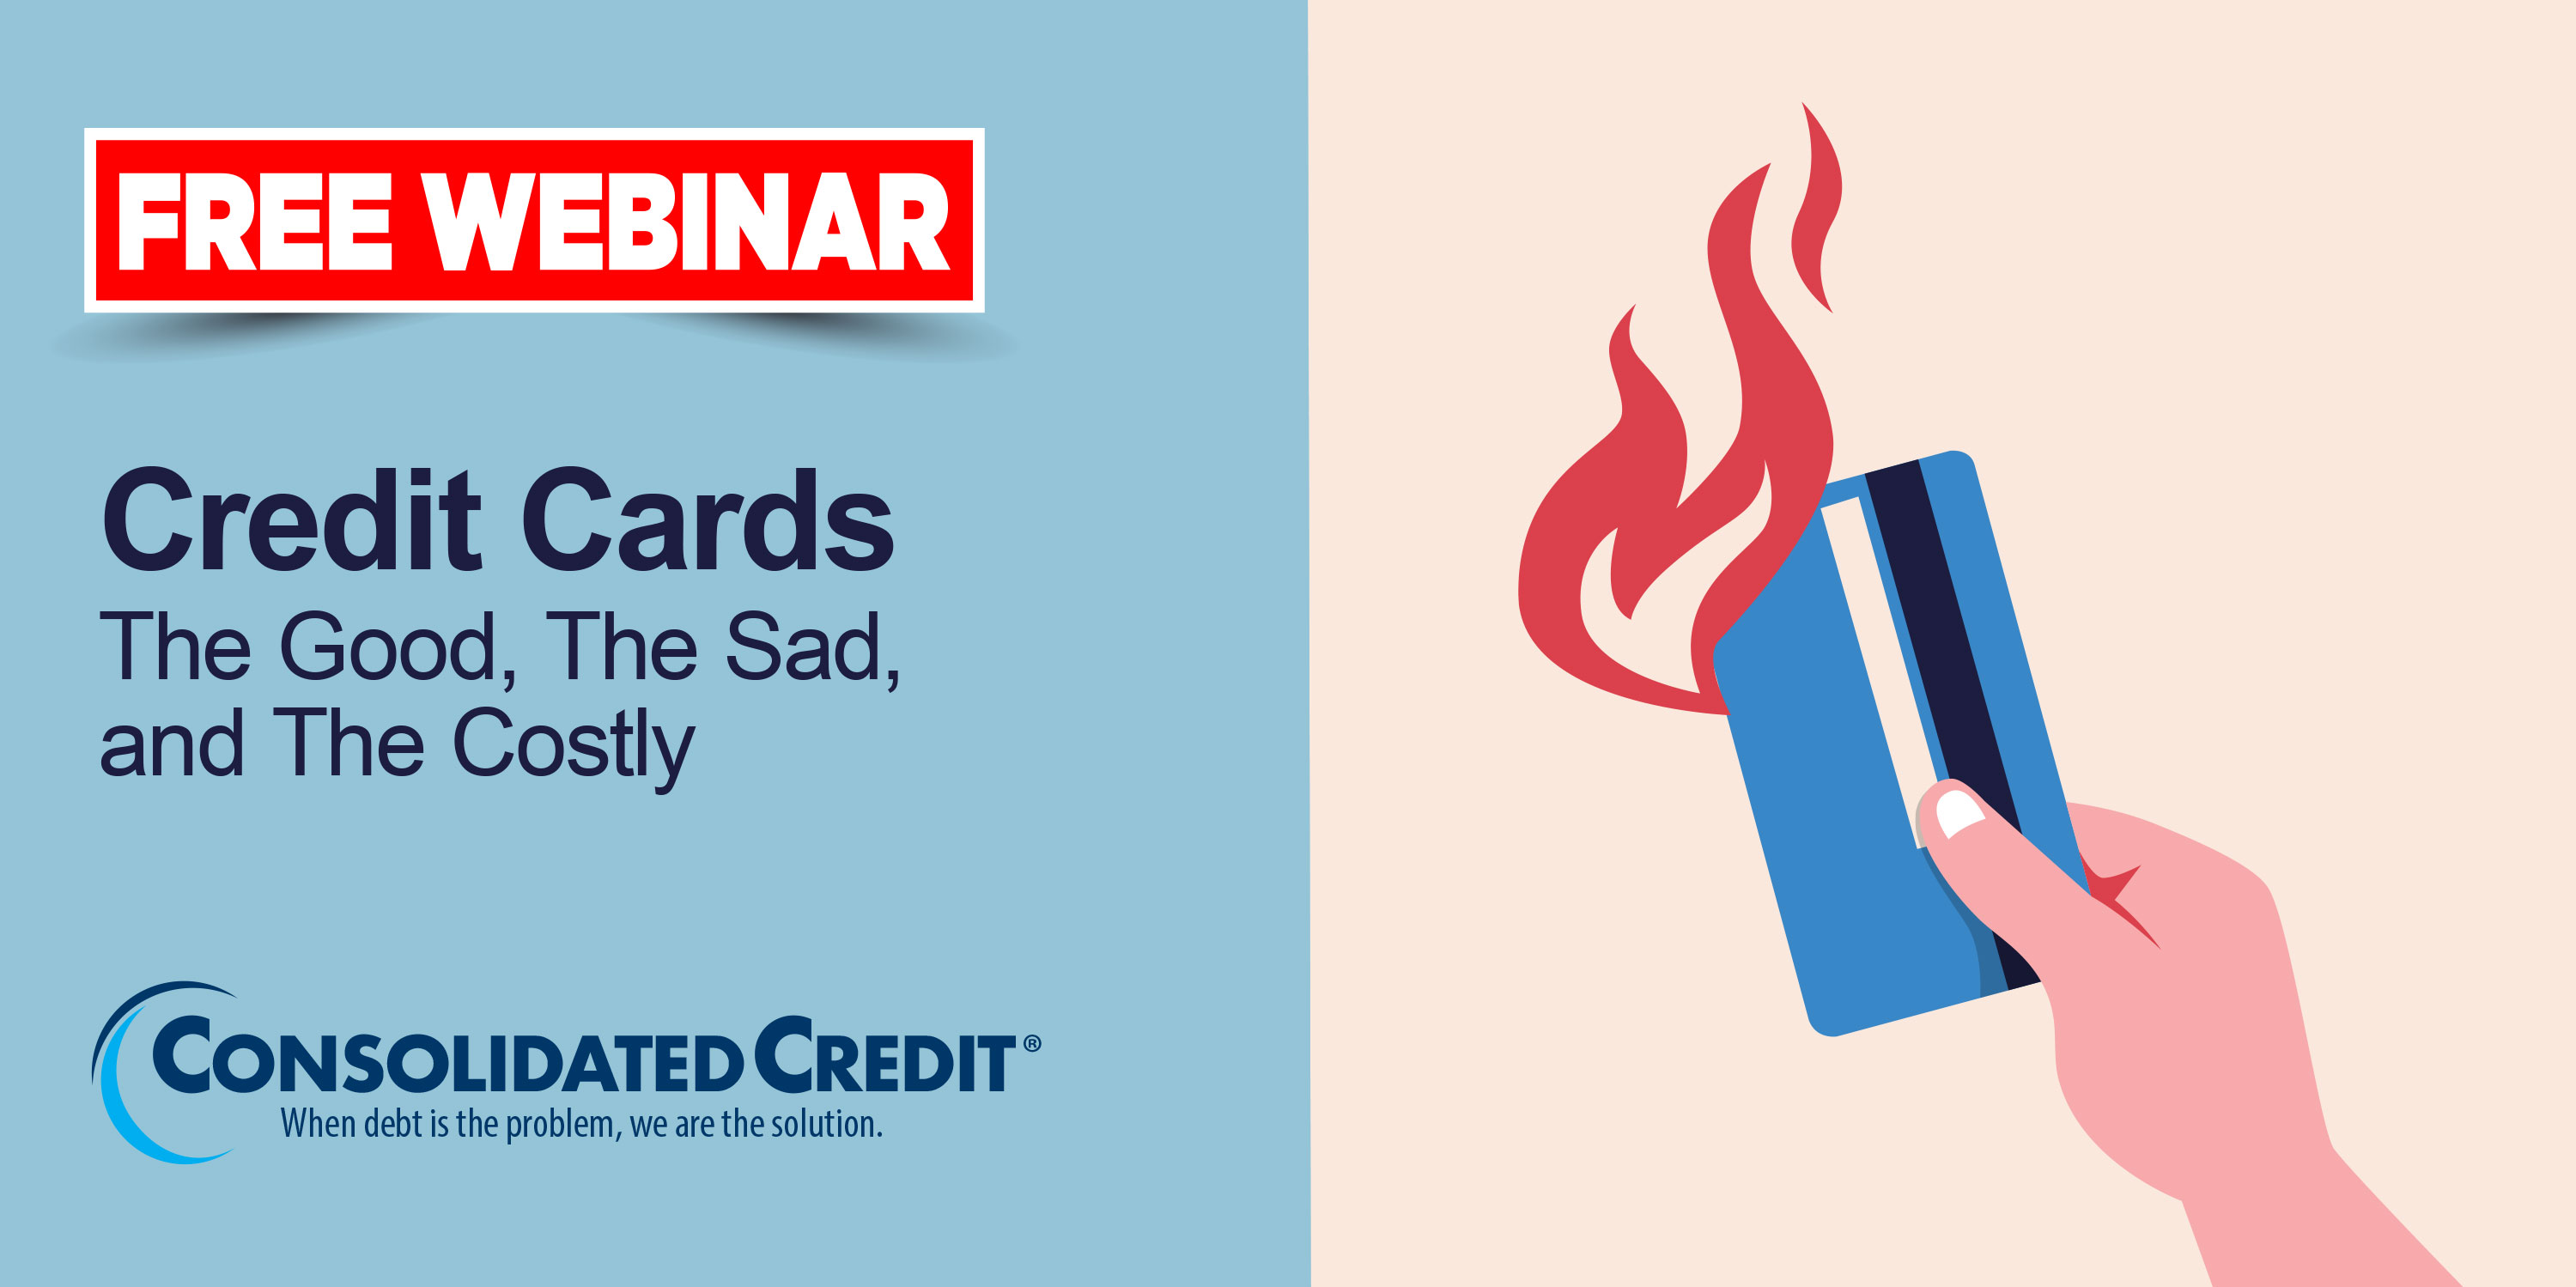 Free Webinar: Credit Cards - The Good, The Sad, and The Costly